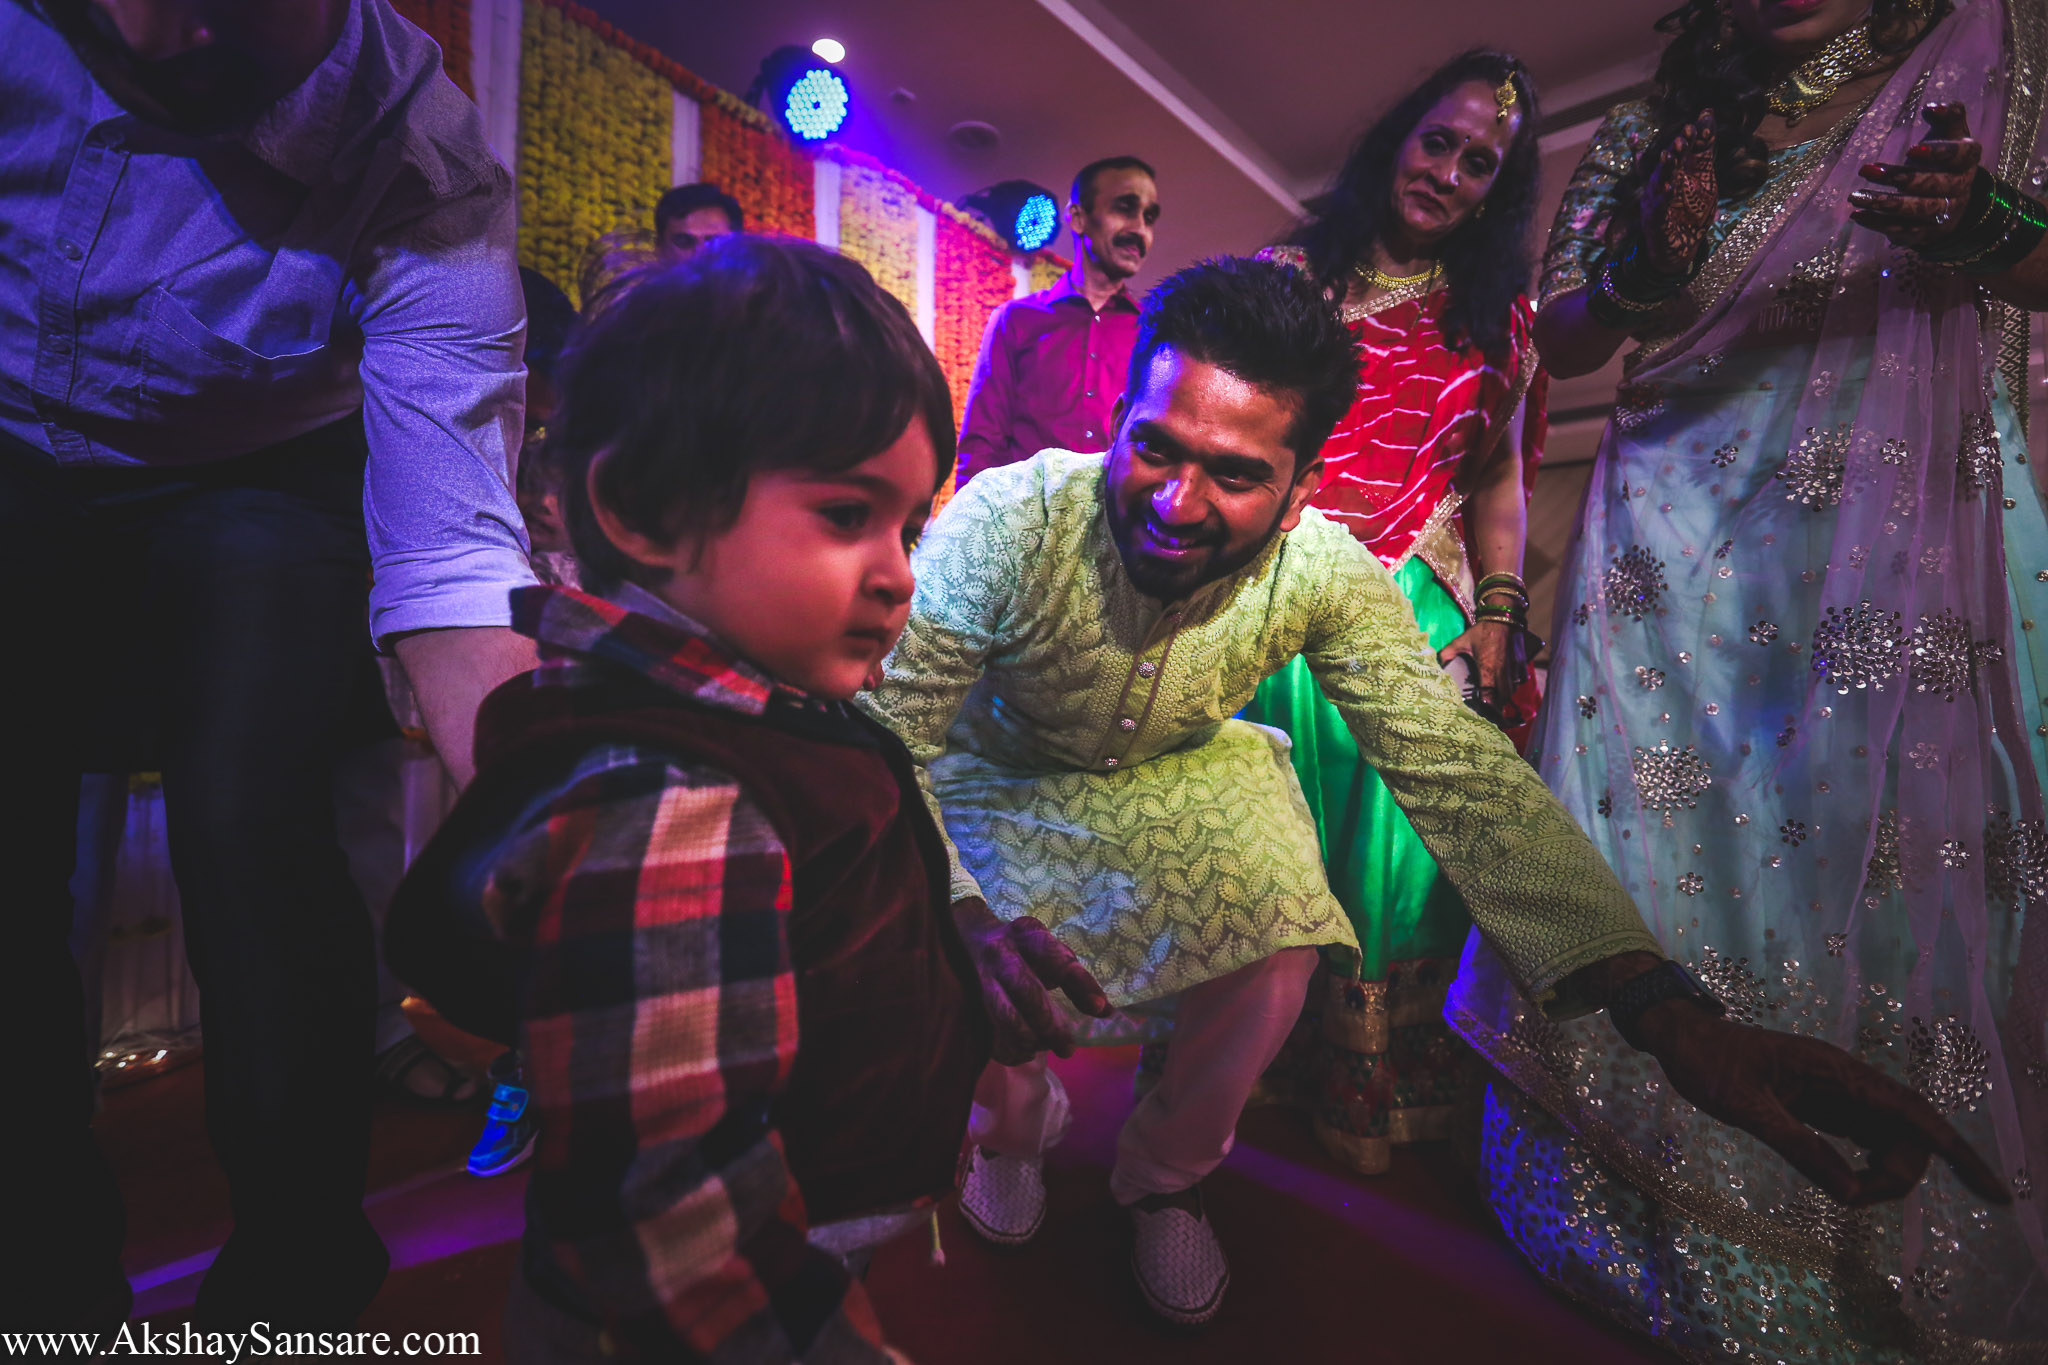 Ajay & Devika Akshay Sansare Photography Best Candid wedding photographer in mumbai india17.jpg